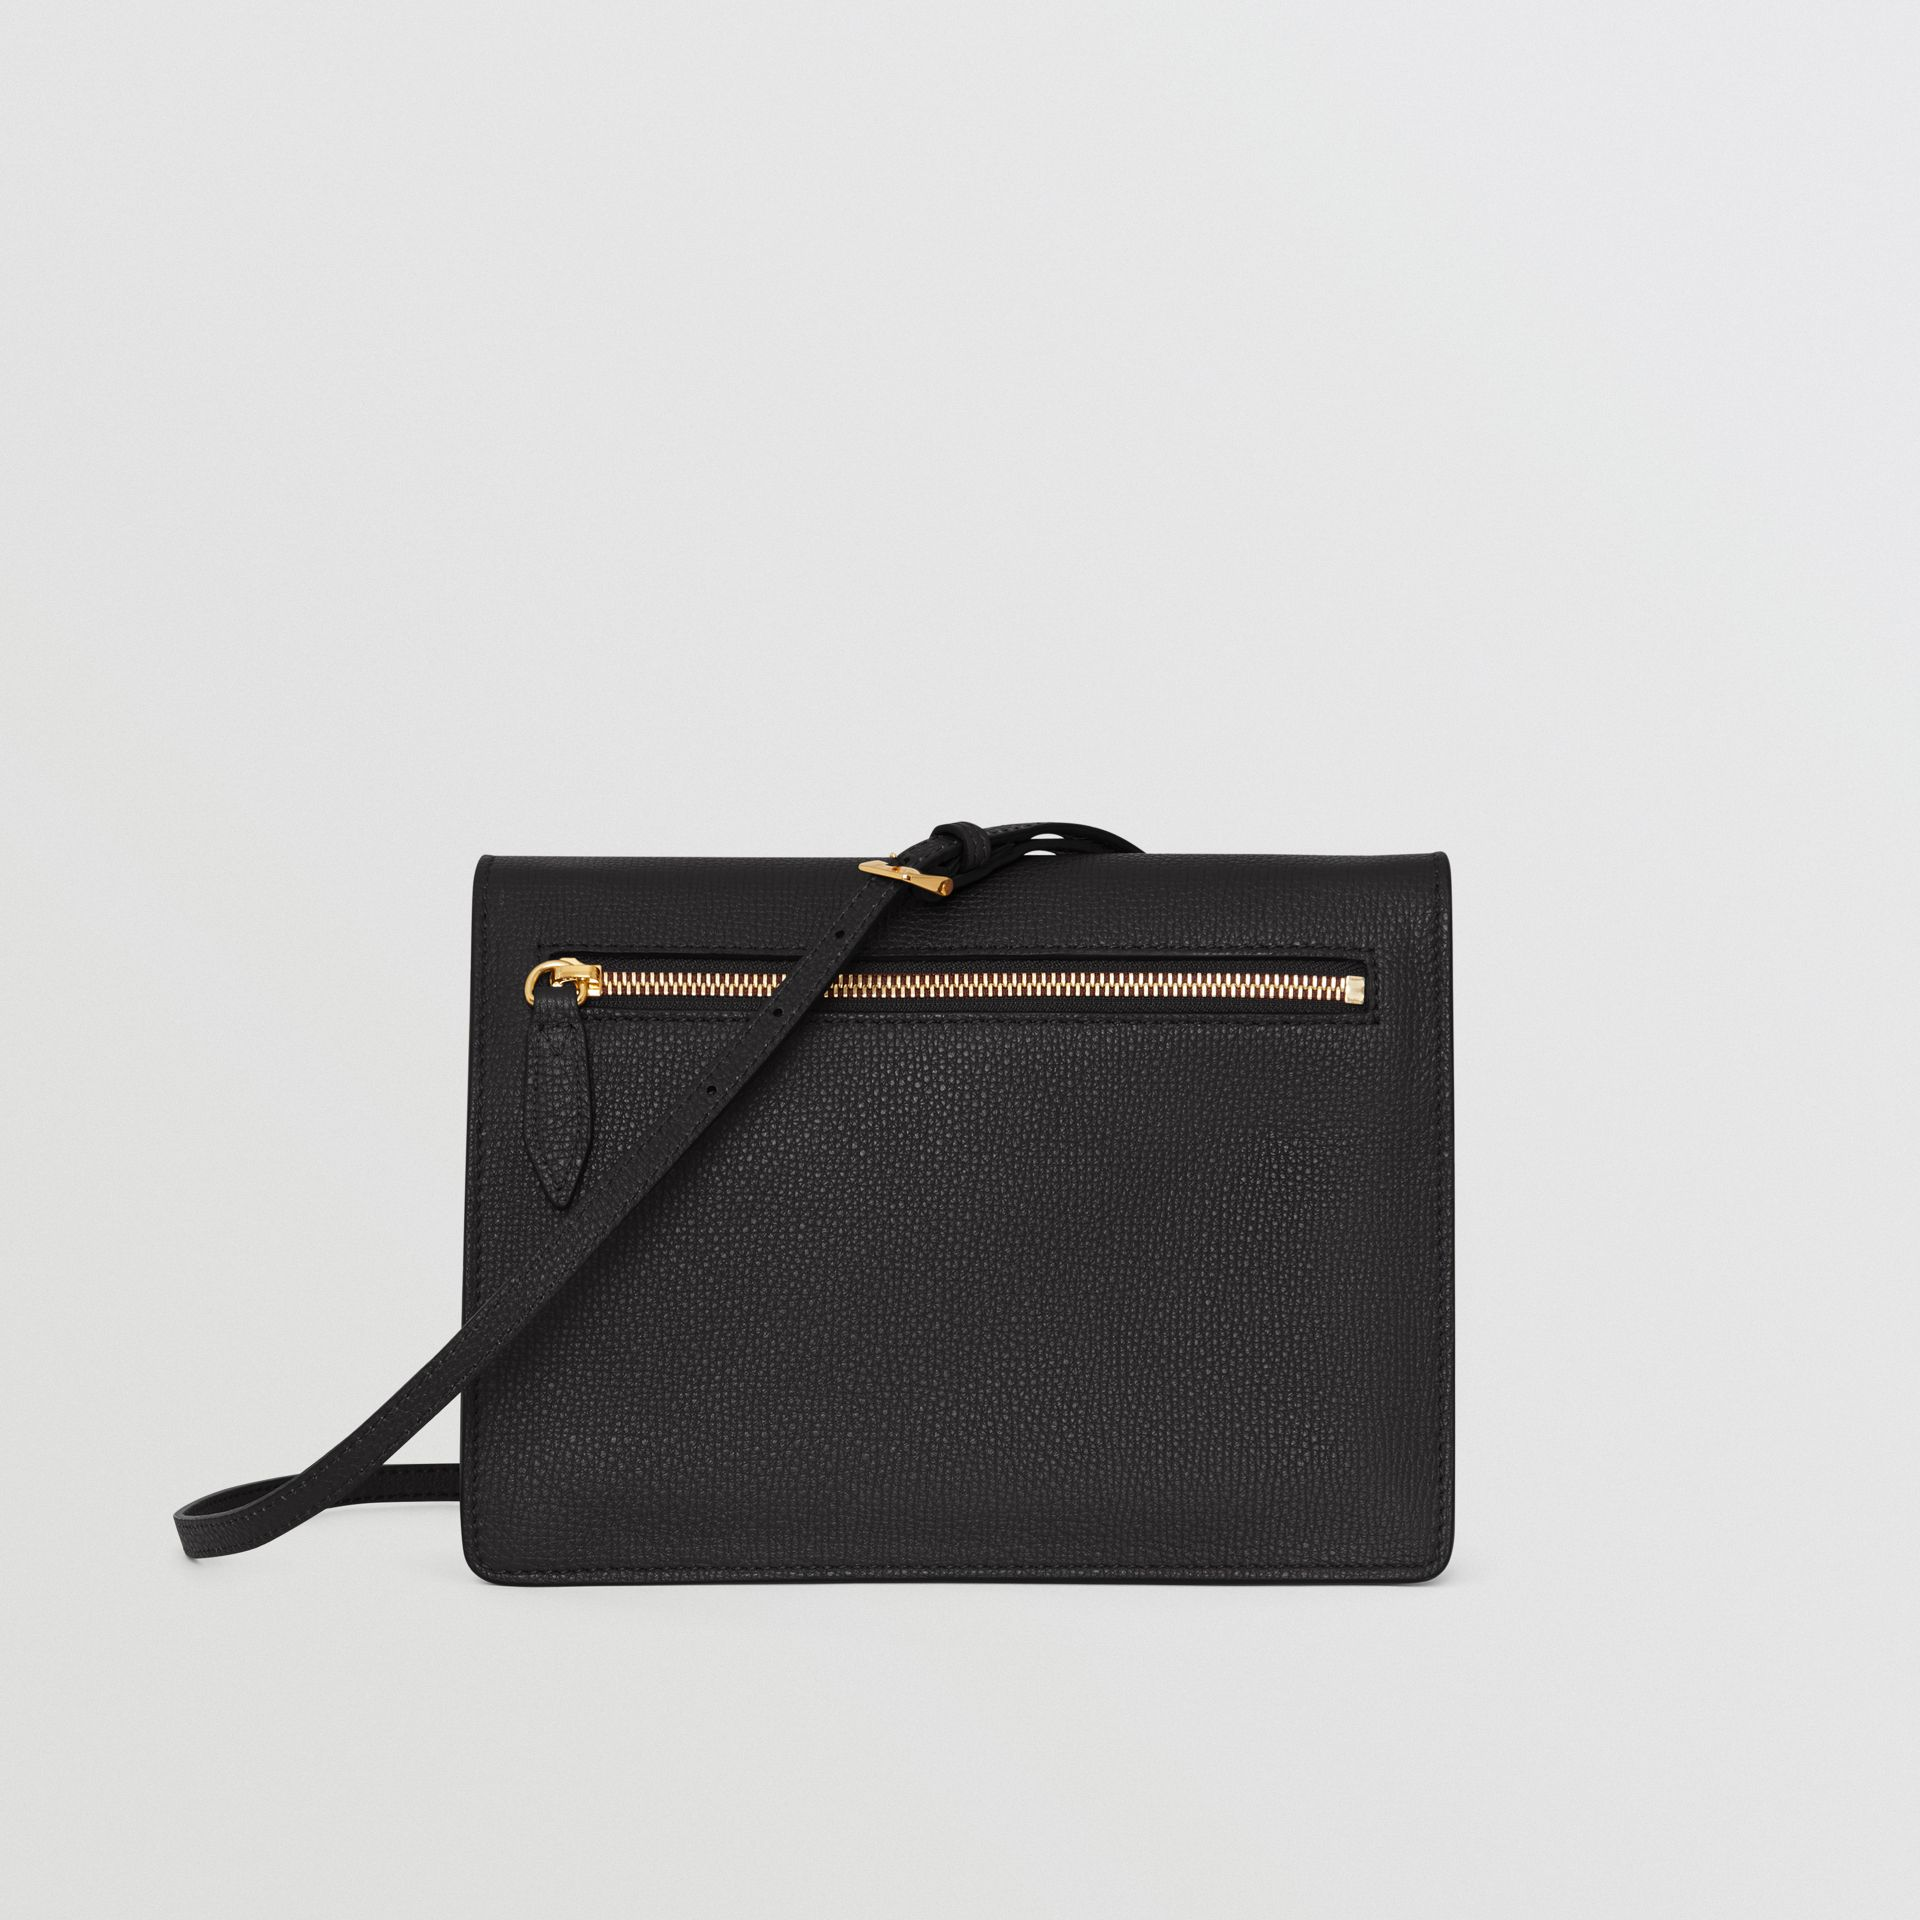 Small Leather Crossbody Bag in Black - Women | Burberry United Kingdom - gallery image 7